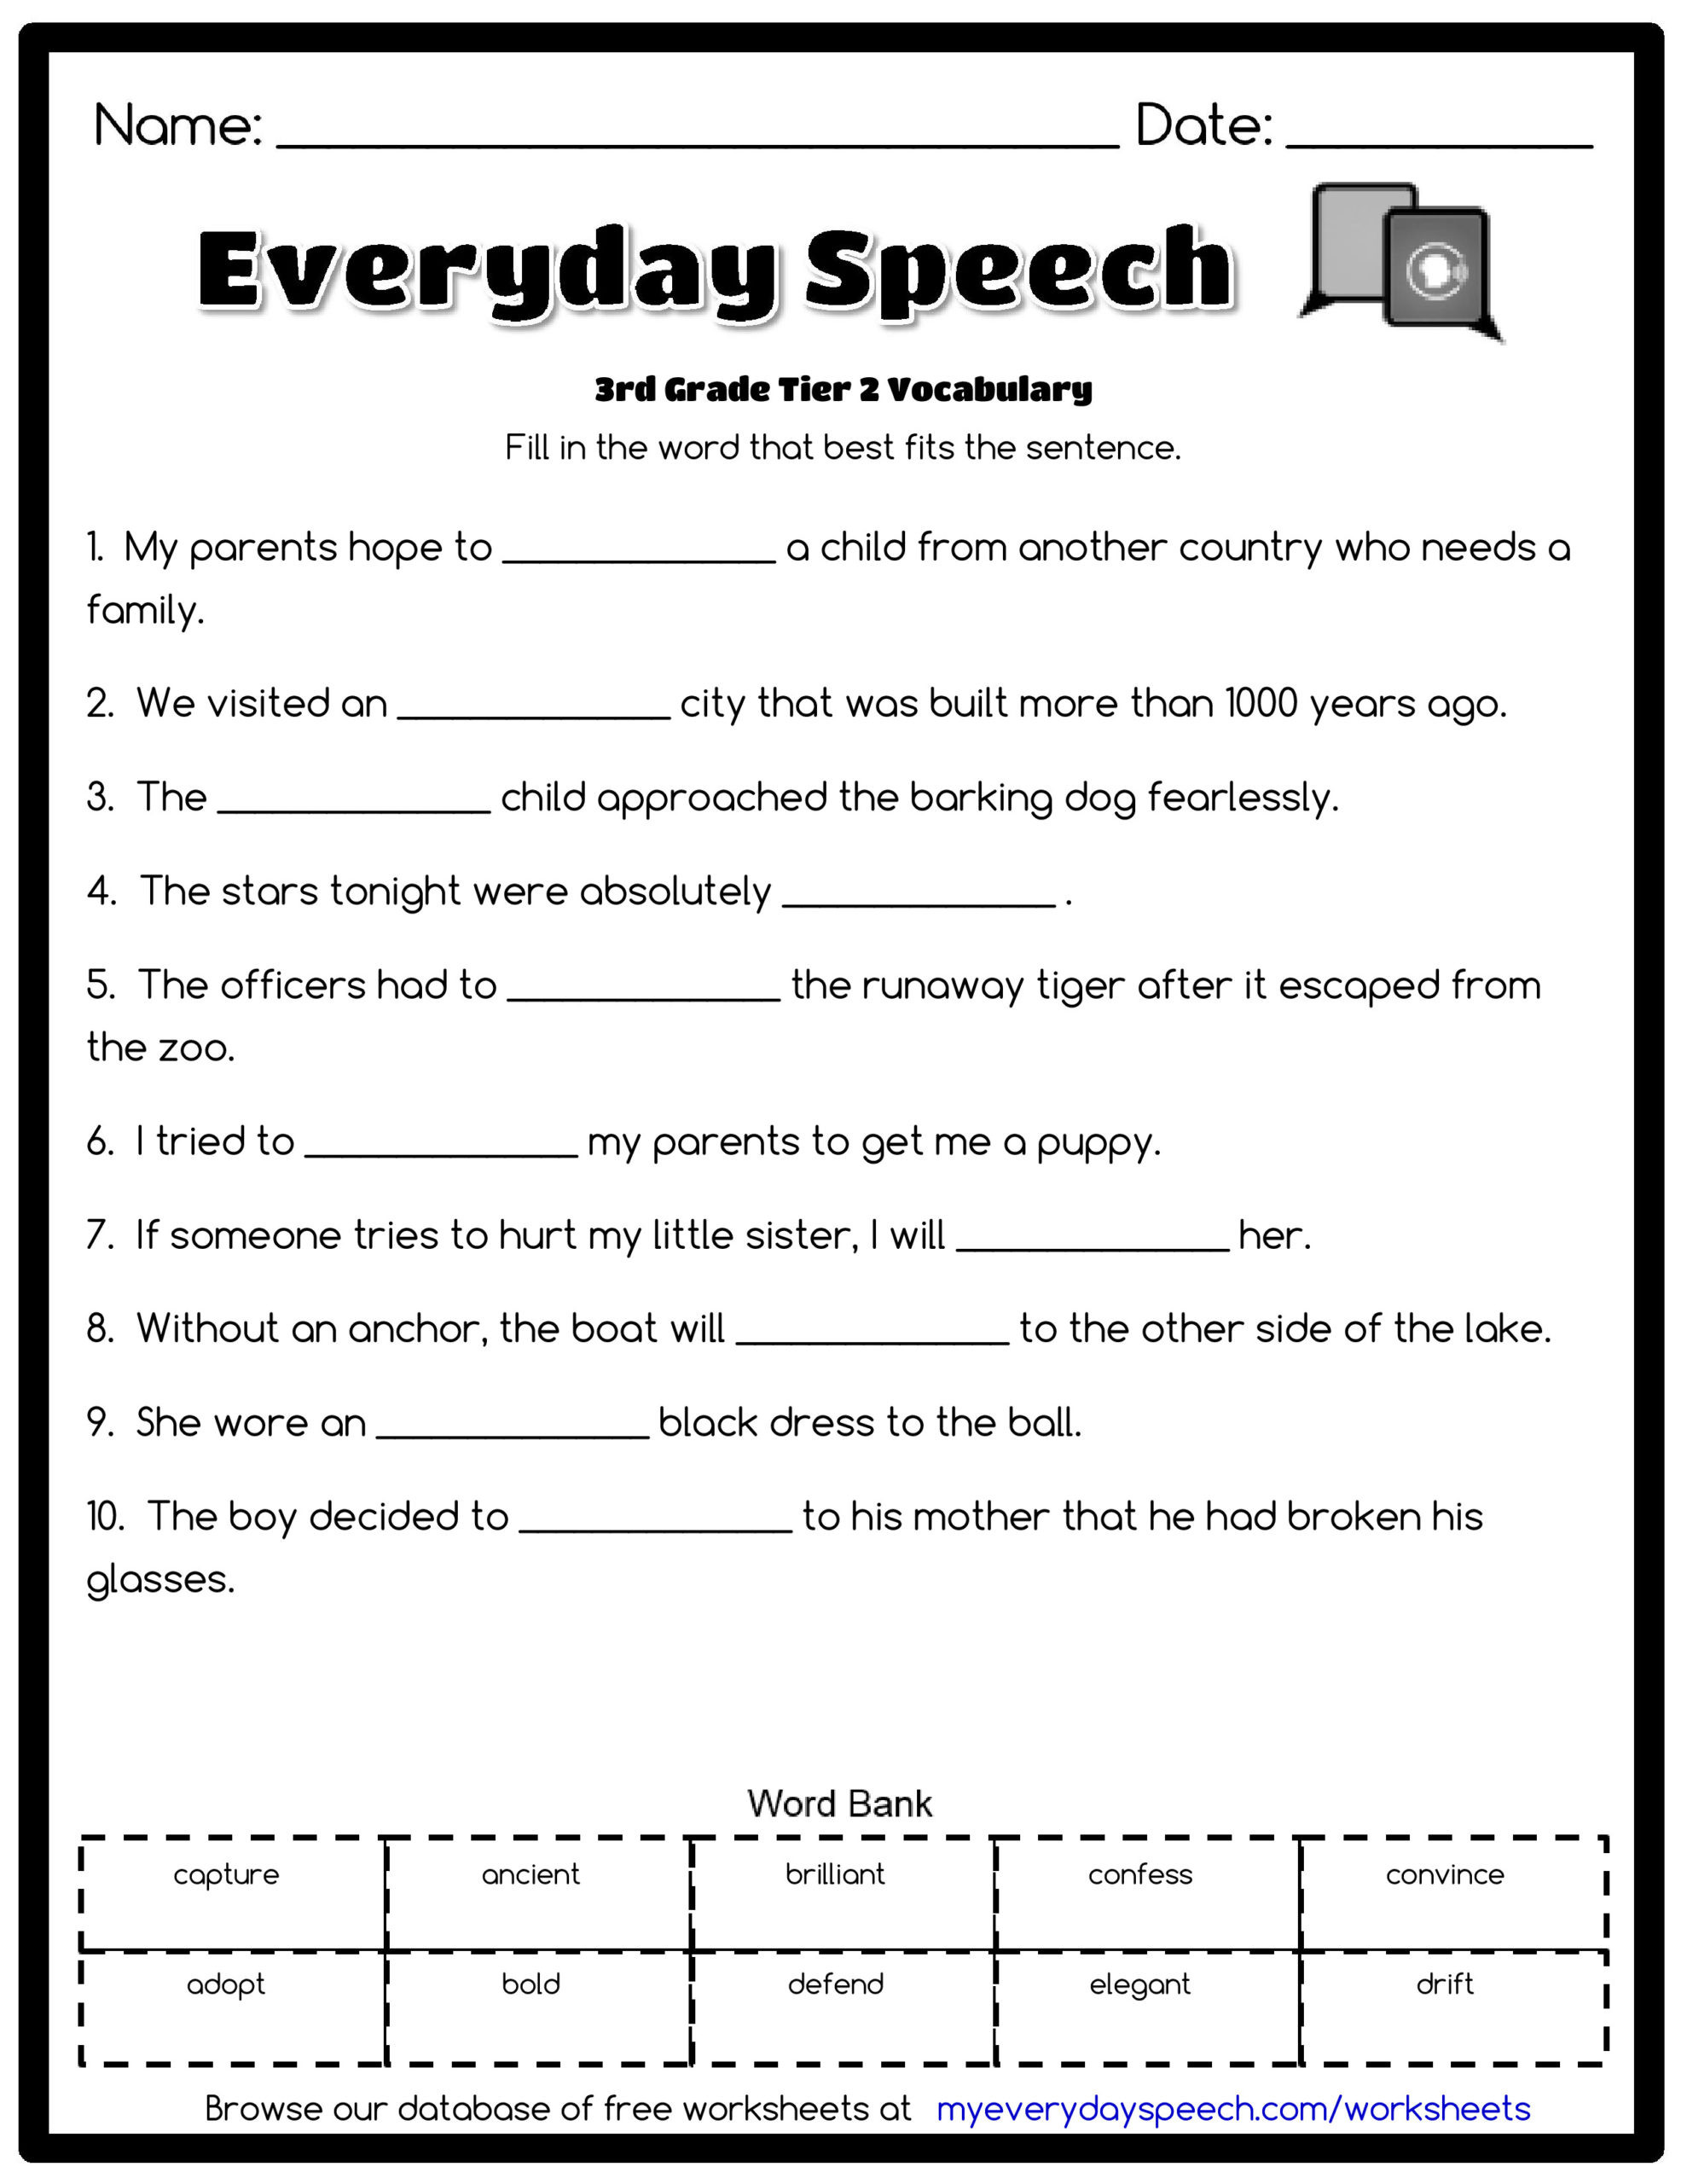 Spelling Worksheets 3rd Grade Math Worksheet Marvelous Worksheets for Third Grade